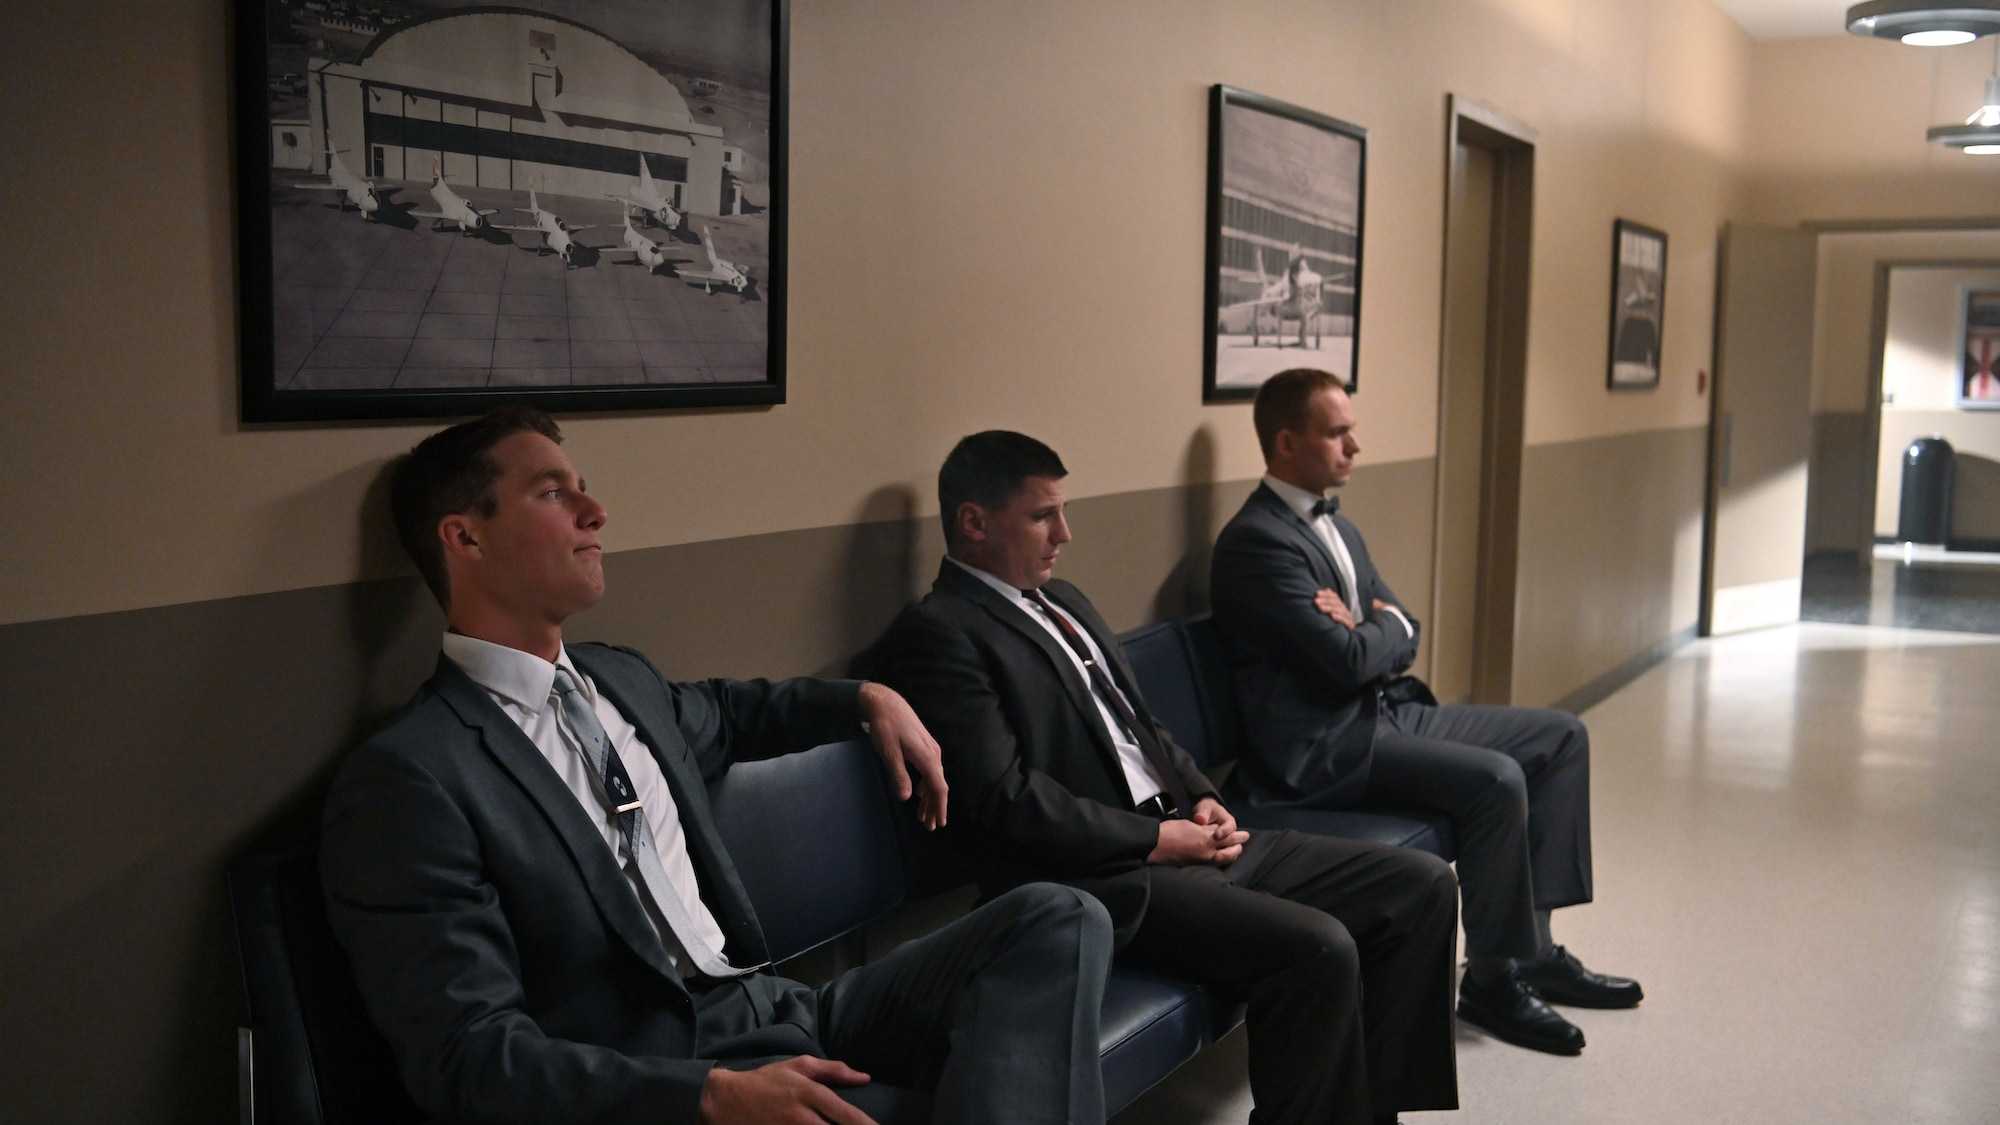 L to R: Jake McDorman as Alan Shepard, Michael Trotter as Gus Grissom and Patrick J. Adams as John Glenn waiting to address the press in National Geographic's THE RIGHT STUFF streaming on Disney+. (National Geographic/Gene Page)